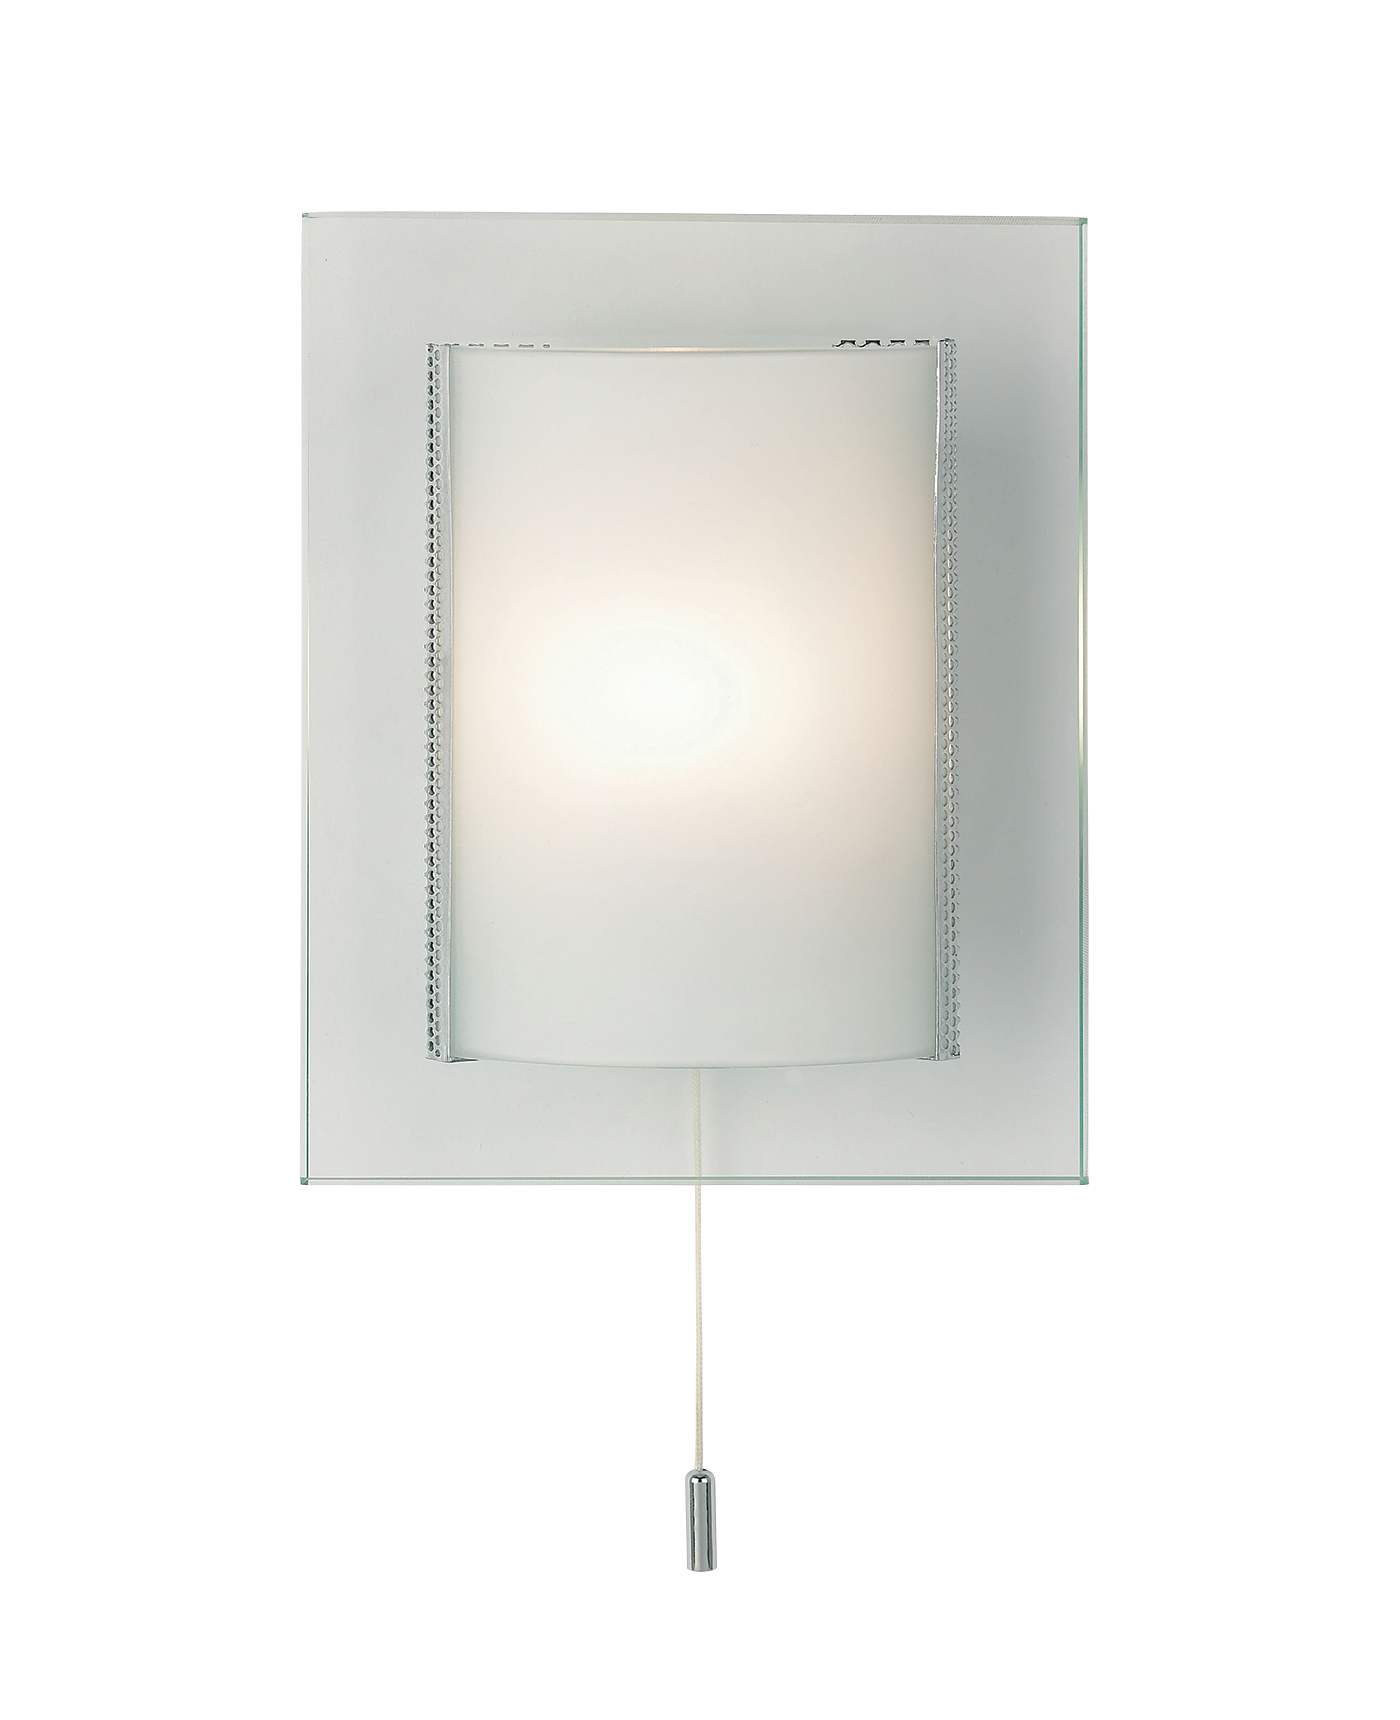 Endon Cabot 1lt wall light 33W Clear & frosted glass